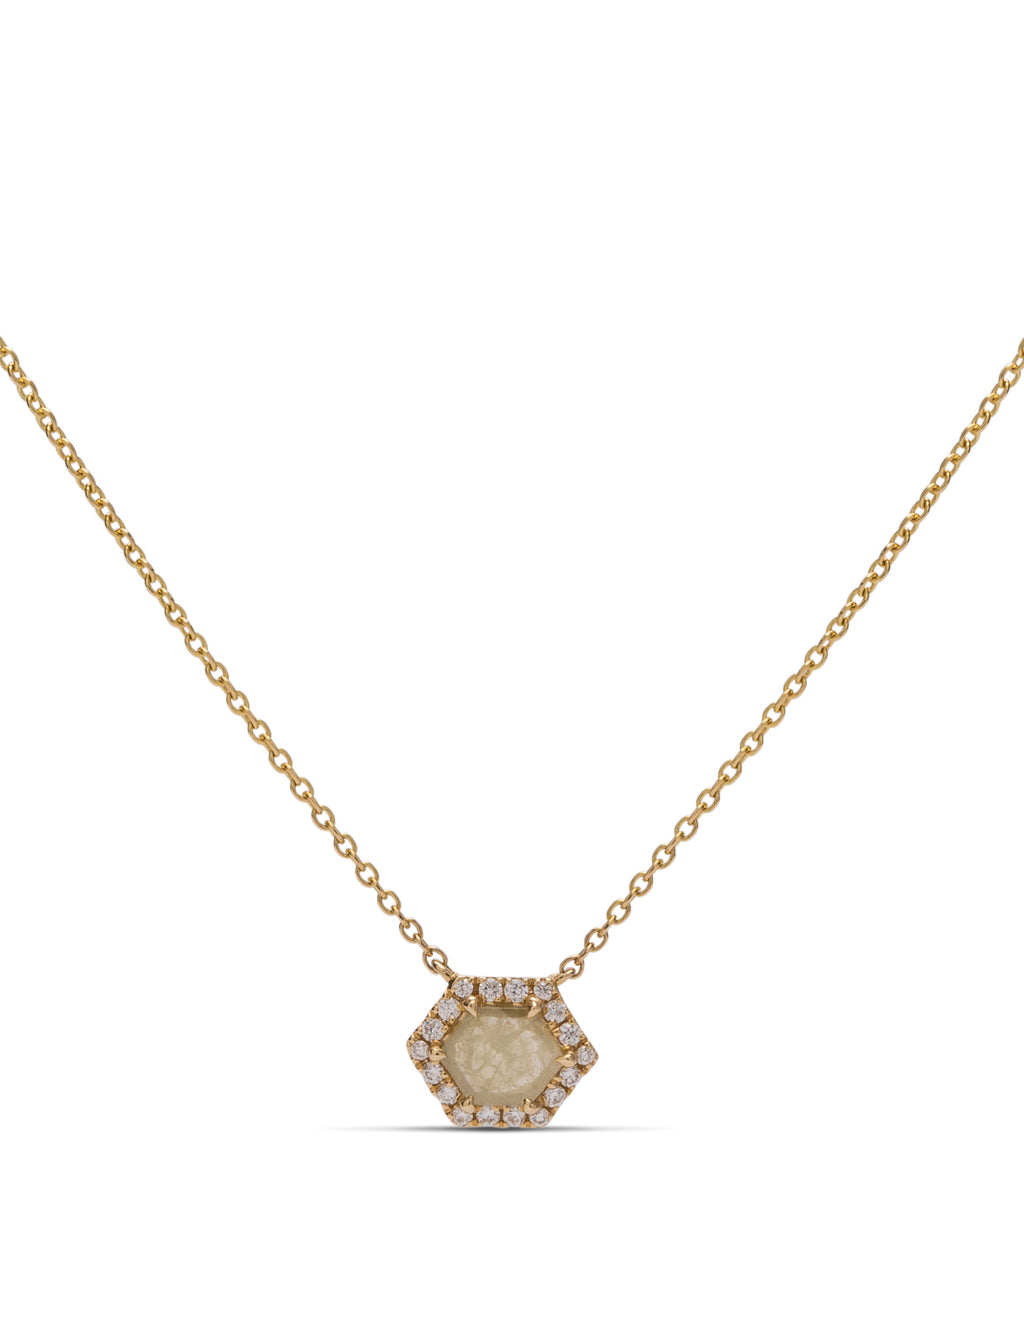 Yellow Cushion Shaped Rough Diamond Necklace - Charles Koll Jewellers